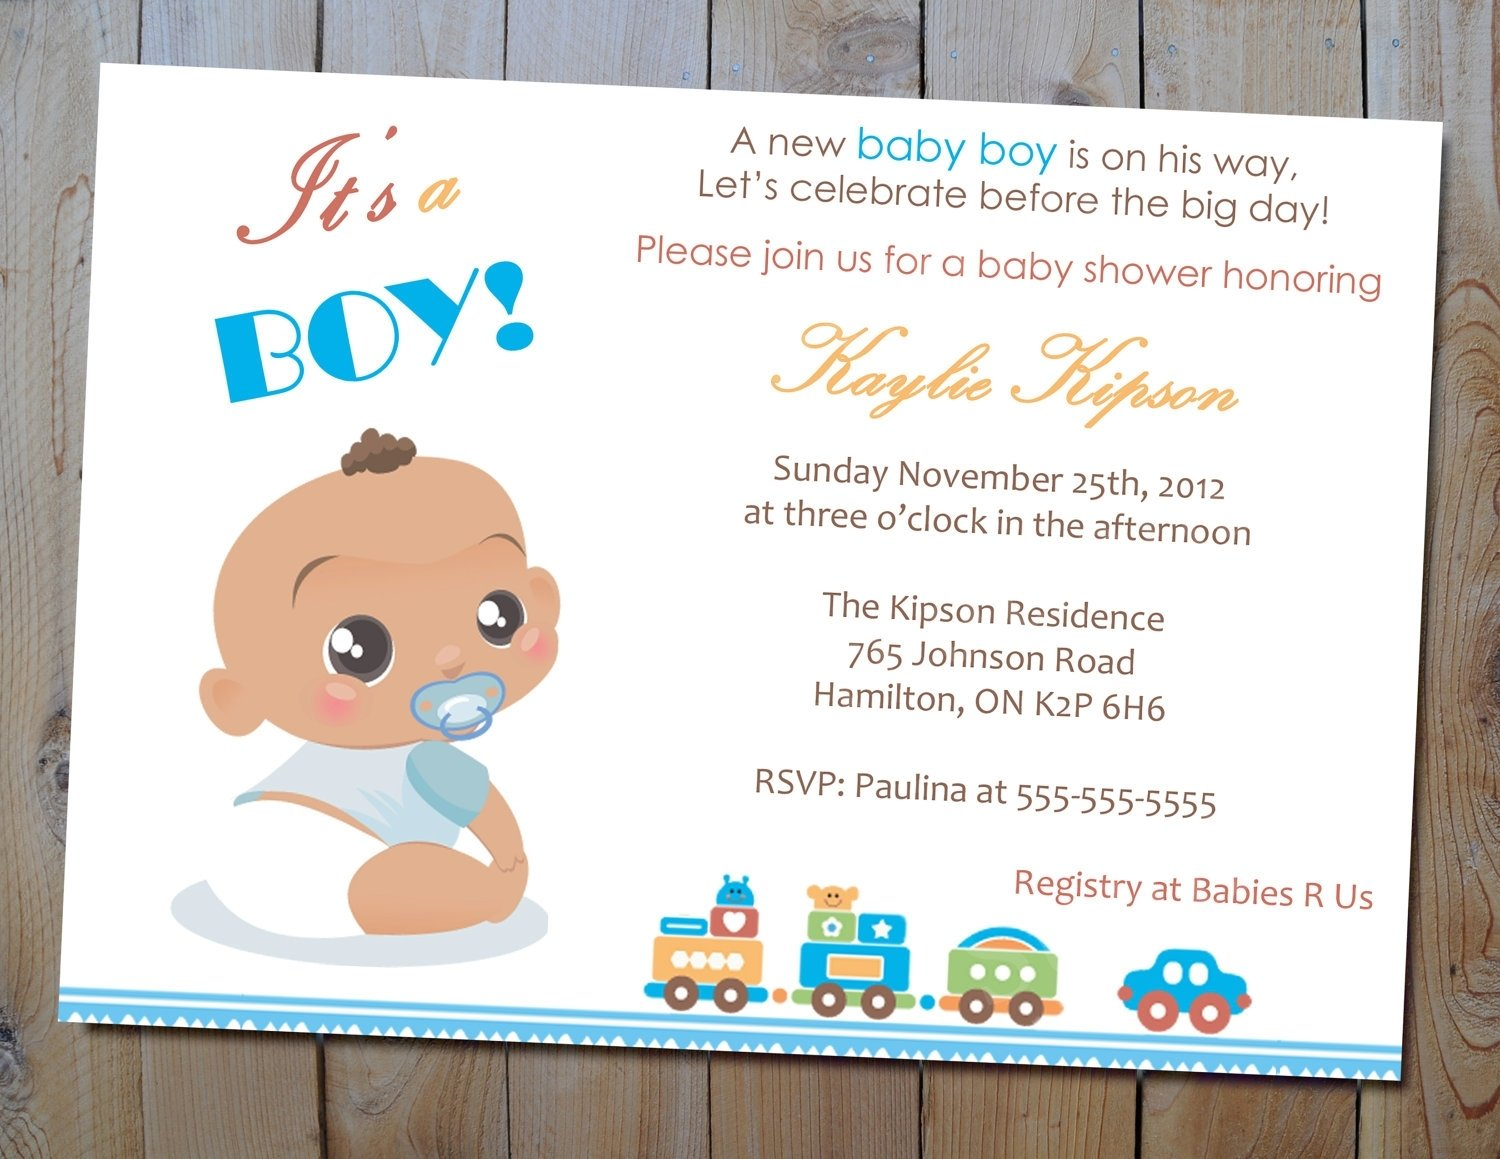 10 Fashionable Ideas For Baby Shower Invitations baby shower invitations ideas for a boy omega center ideas 1 2021